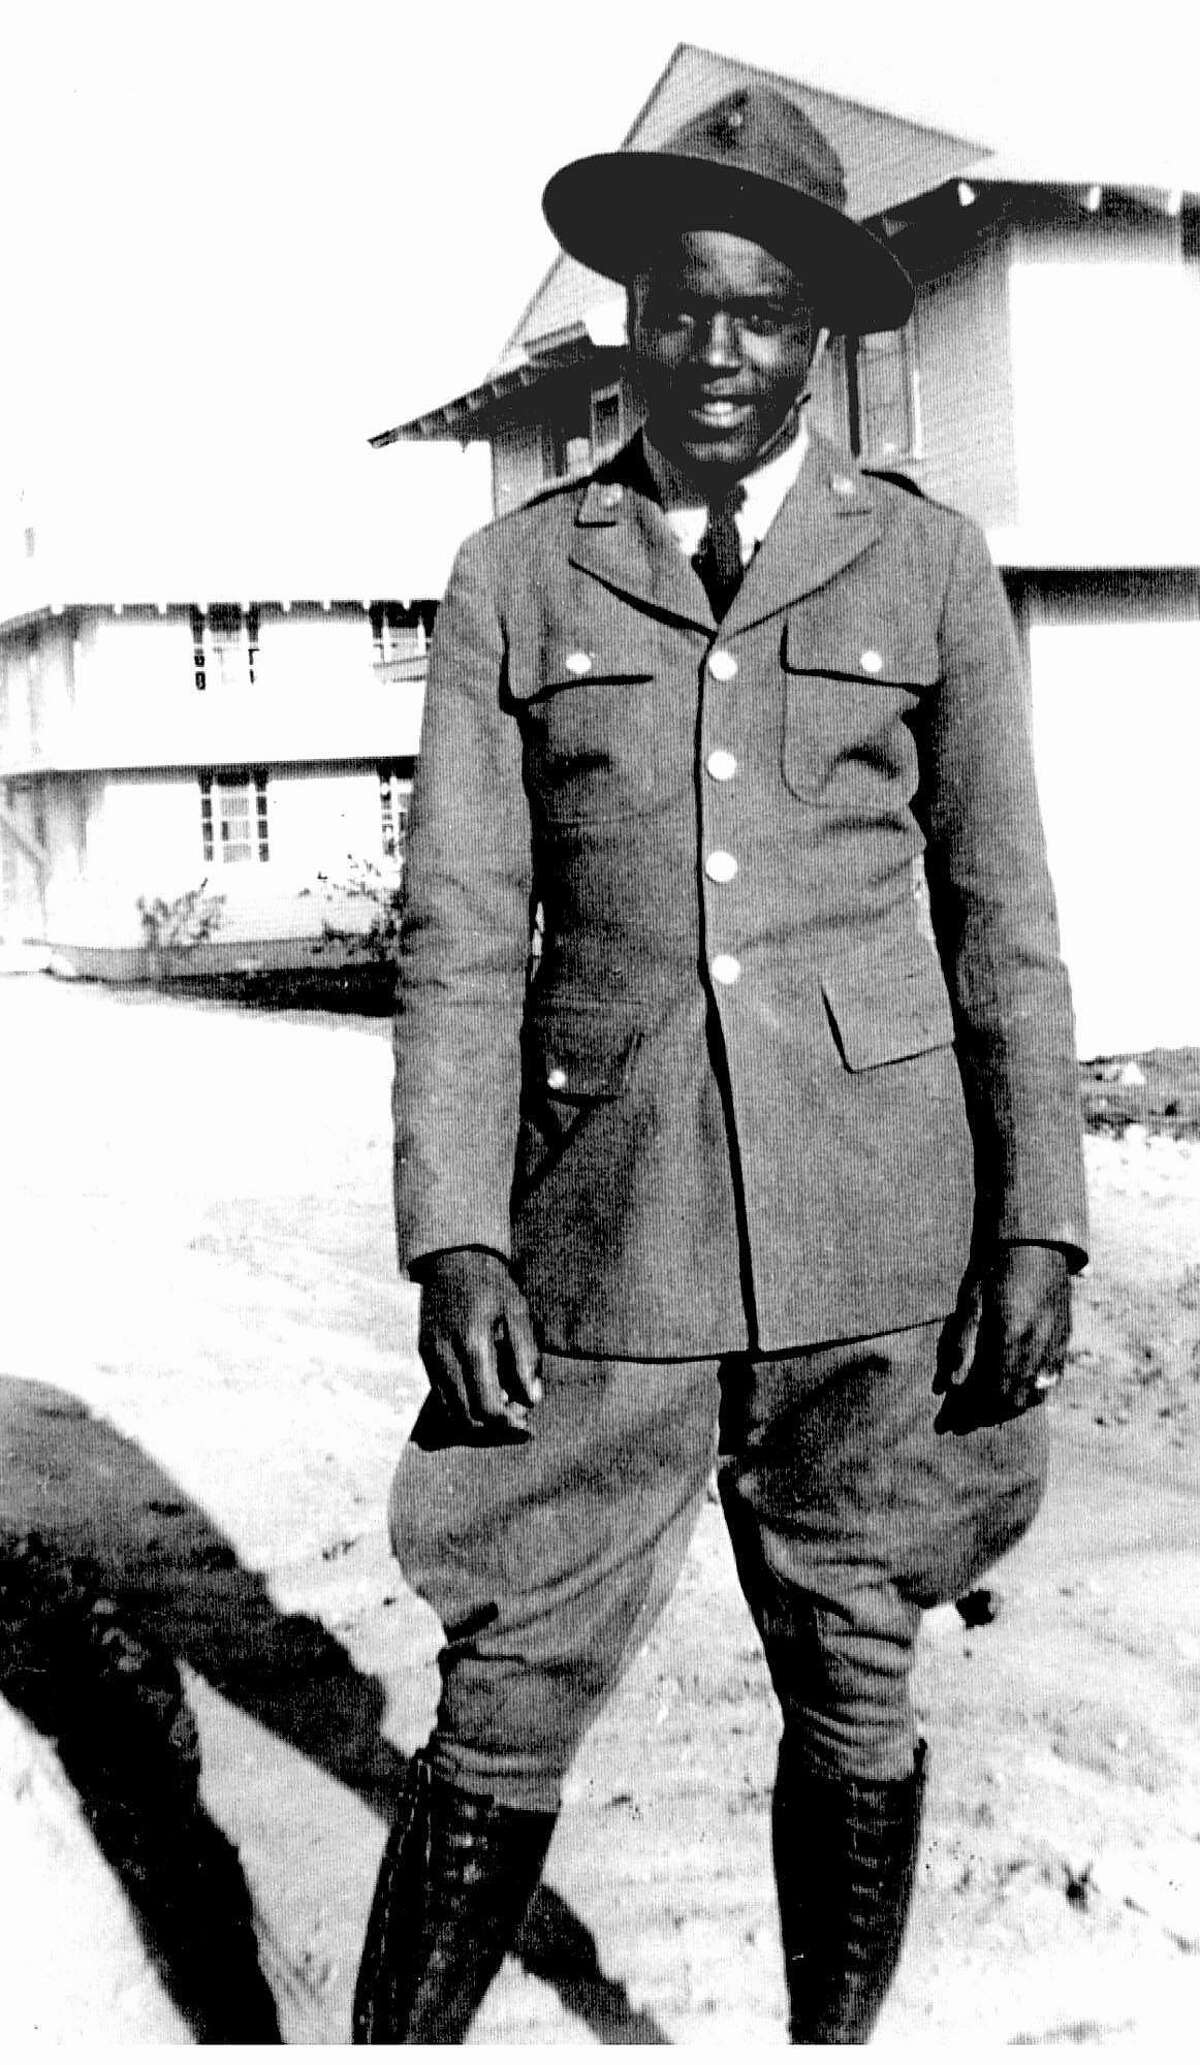 ADVANCE FOR SUNDAY, NOV. 12--SOU--FILE--Although the military services were segregated during the World War II, many black young men, including future Brooklyn Dodger Jackie Robinson, shown in uniform in this undated photograph taken at Camp Hood, Tex., served their country, through black-only units, squadrons, and battalions, such as the 761st Tank Battalion nicknamed 'Black Panthers.' Robinson was kicked out of the 'Black Panthers' unit because he sat next to a white officer's wife on a segregated bus. (AP Photo/E.G. McConnell Personal Collection)